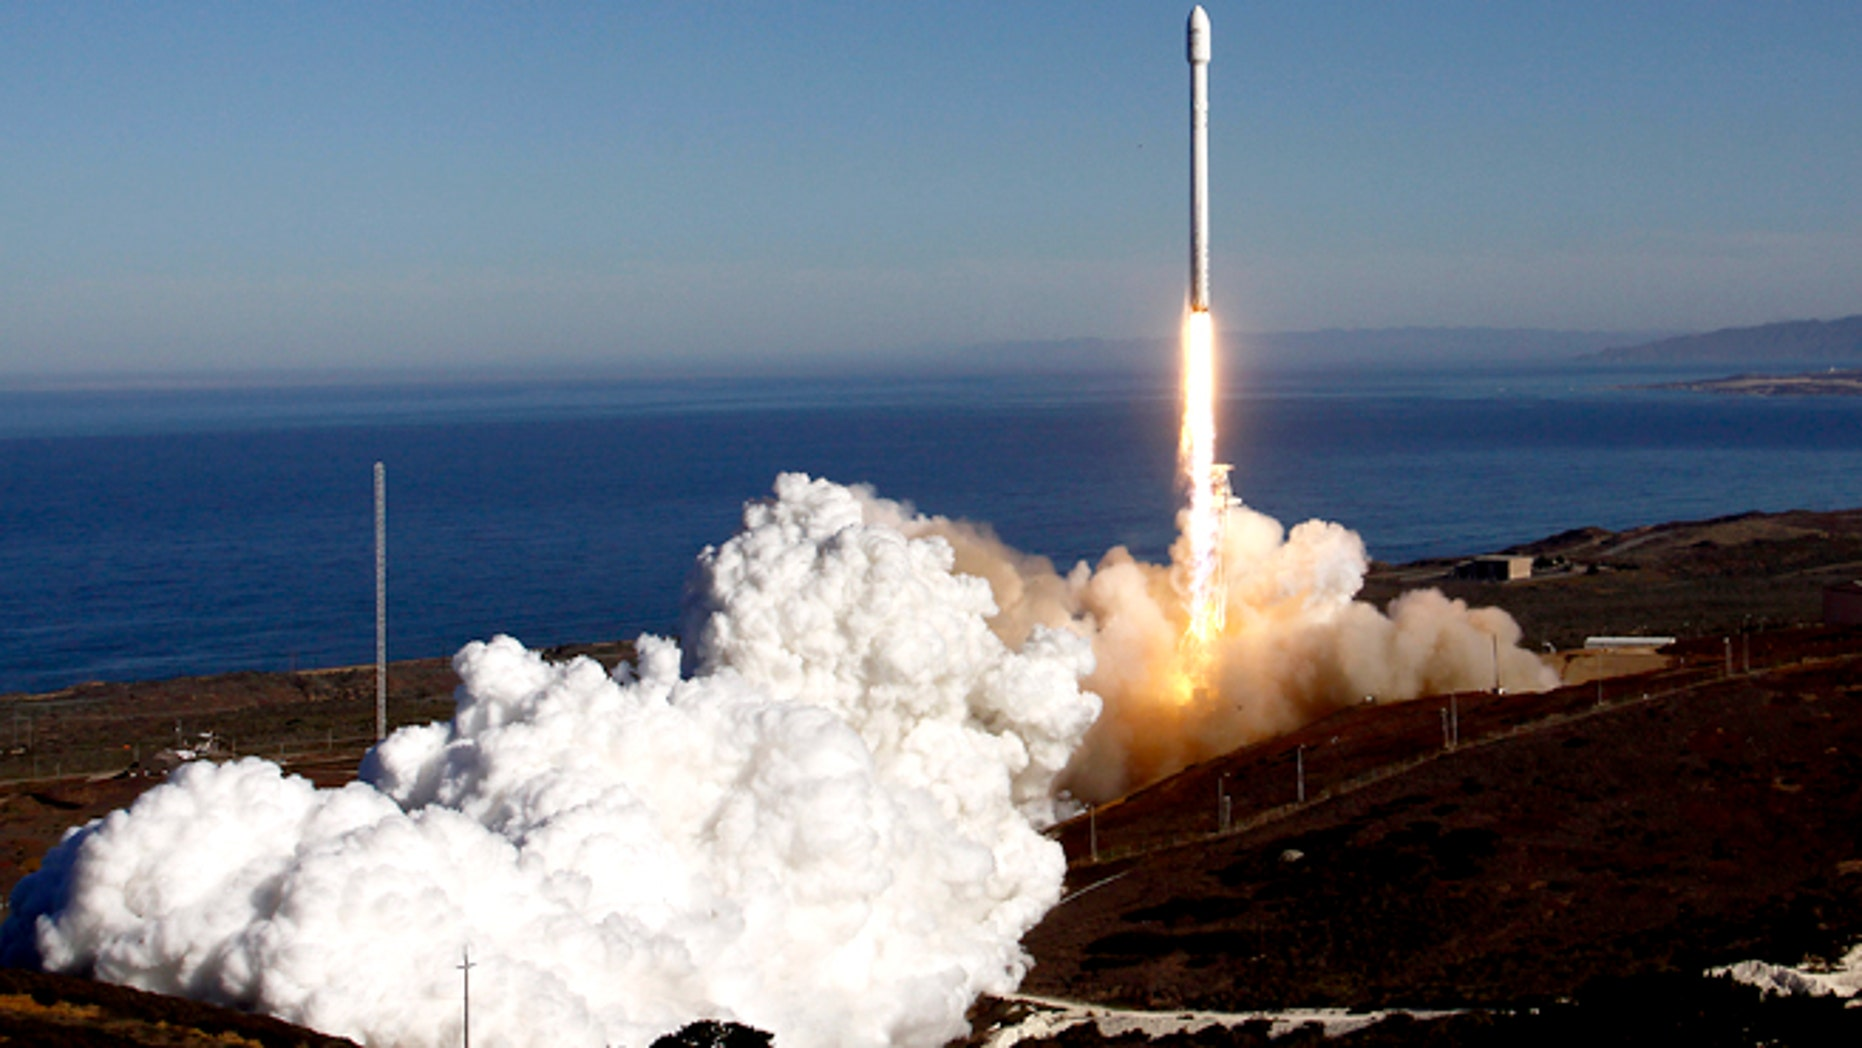 A Falcon 9 rocket, built and flown by Space Exploration Technologies, or SpaceX, soared off a newly refurbished, leased launch pad at Vandenberg Air Force Station on September 29, 2013.